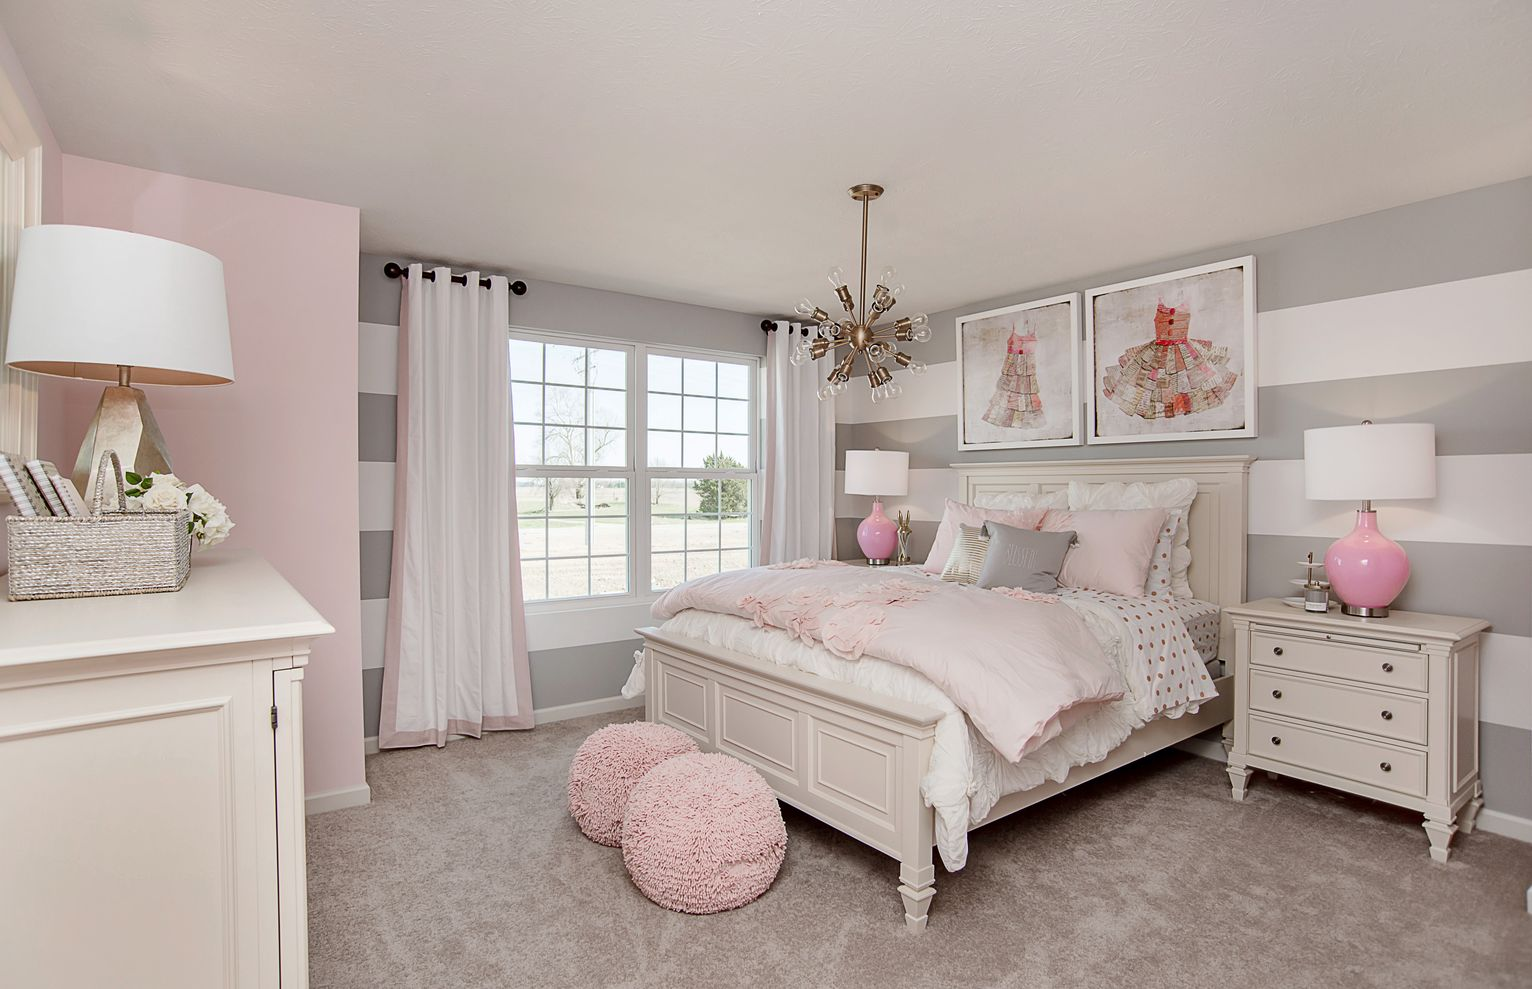 Nifty Apartment Bedroom Ideas You Will Love Apartment Bedroom Ideas You Will Love Round Decor Apartment Bedroom Ideas Apartment Bedroom Ideas On A Budget houzz 01 Apartment Bedroom Ideas